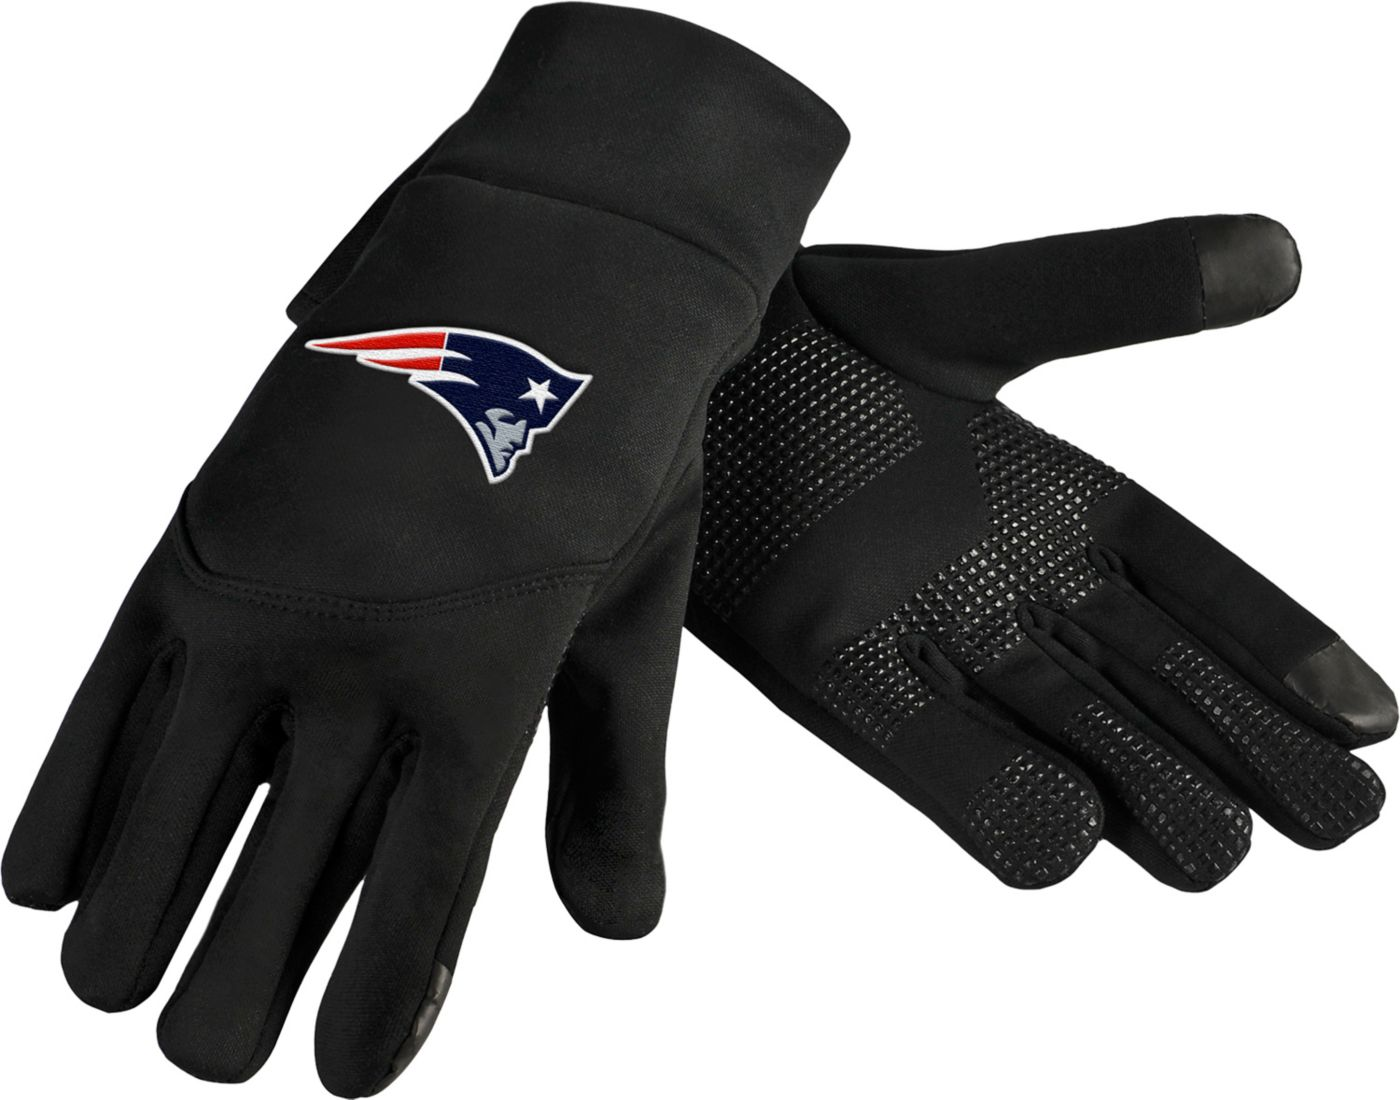 FOCO New England Patriots Texting Gloves